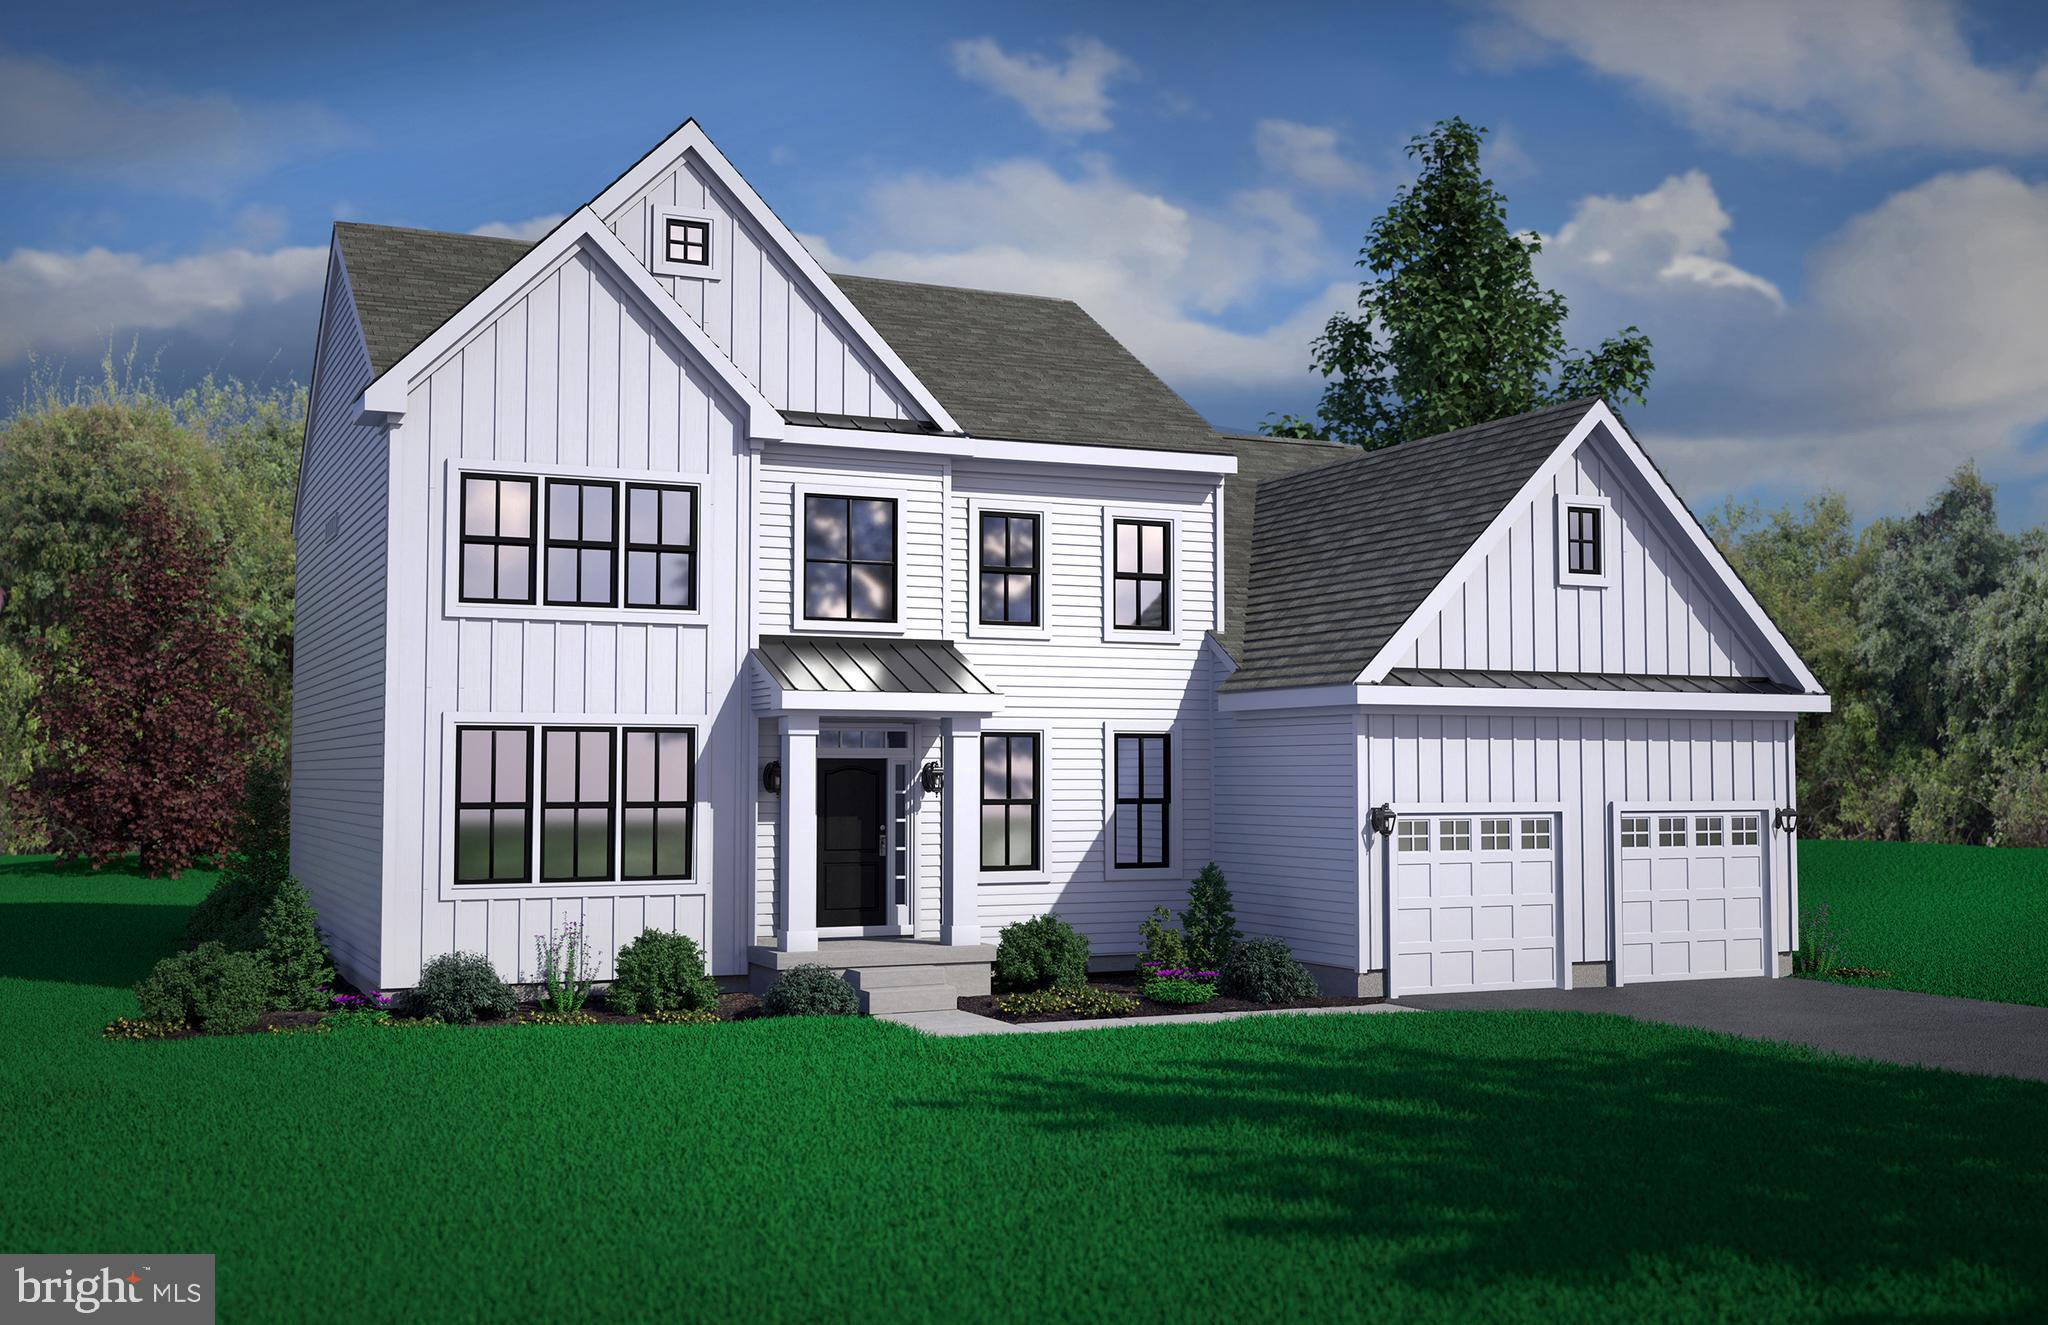 **Proposed Construction** Wilkinson introduces the popular Bristol floorplan to Weatherstone Crossing.  The Bristol features 4 bedrooms, 2.5 baths, Study and a 2.5 car garage. The Owner's Suite offers a large walk-in closet and luxurious Owner's Bath. You can customize the Bristol to add an additional walk-in closet or bonus space above the garage.  Ask about the door to door move program if you have a house to sell. ***Price reflects the Bristol Traditional elevation with utility foundation. ***Basement option available depending on site evaluation. ***Sample photos and artist renderings shown.  ***See Sales Manager for details.